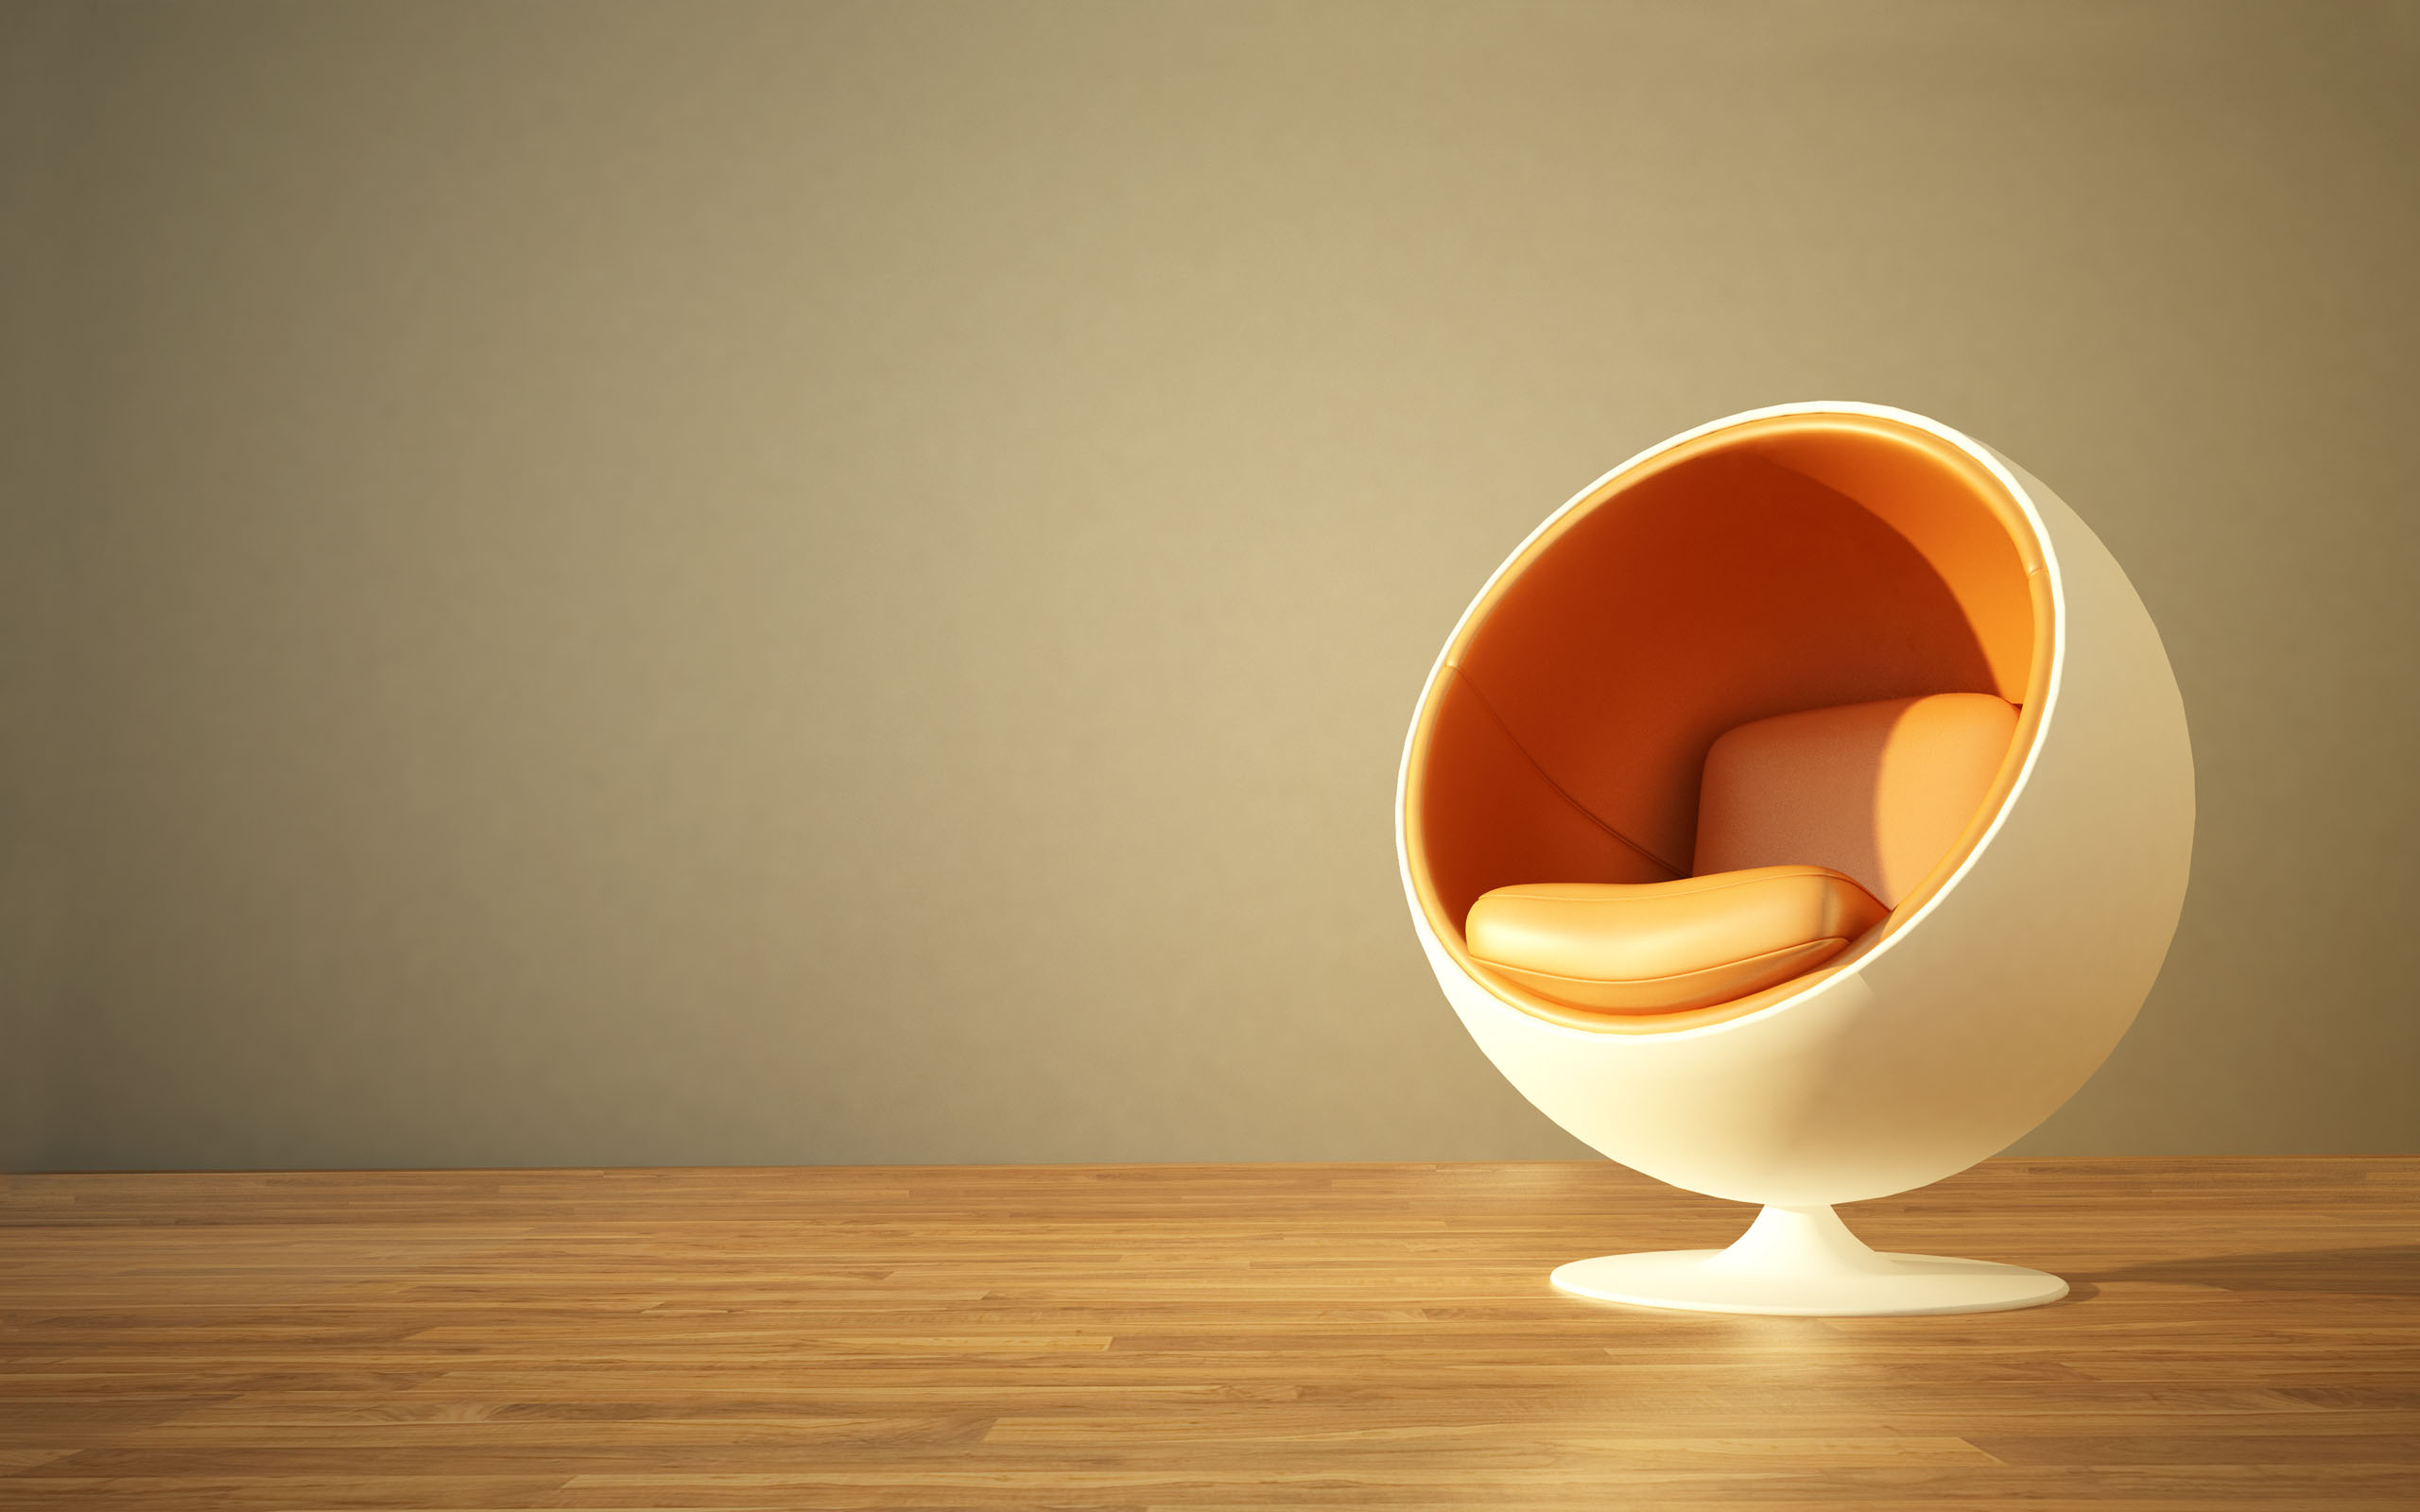 chair design wallpaper kmart bean bag covers furniture full hd and background image